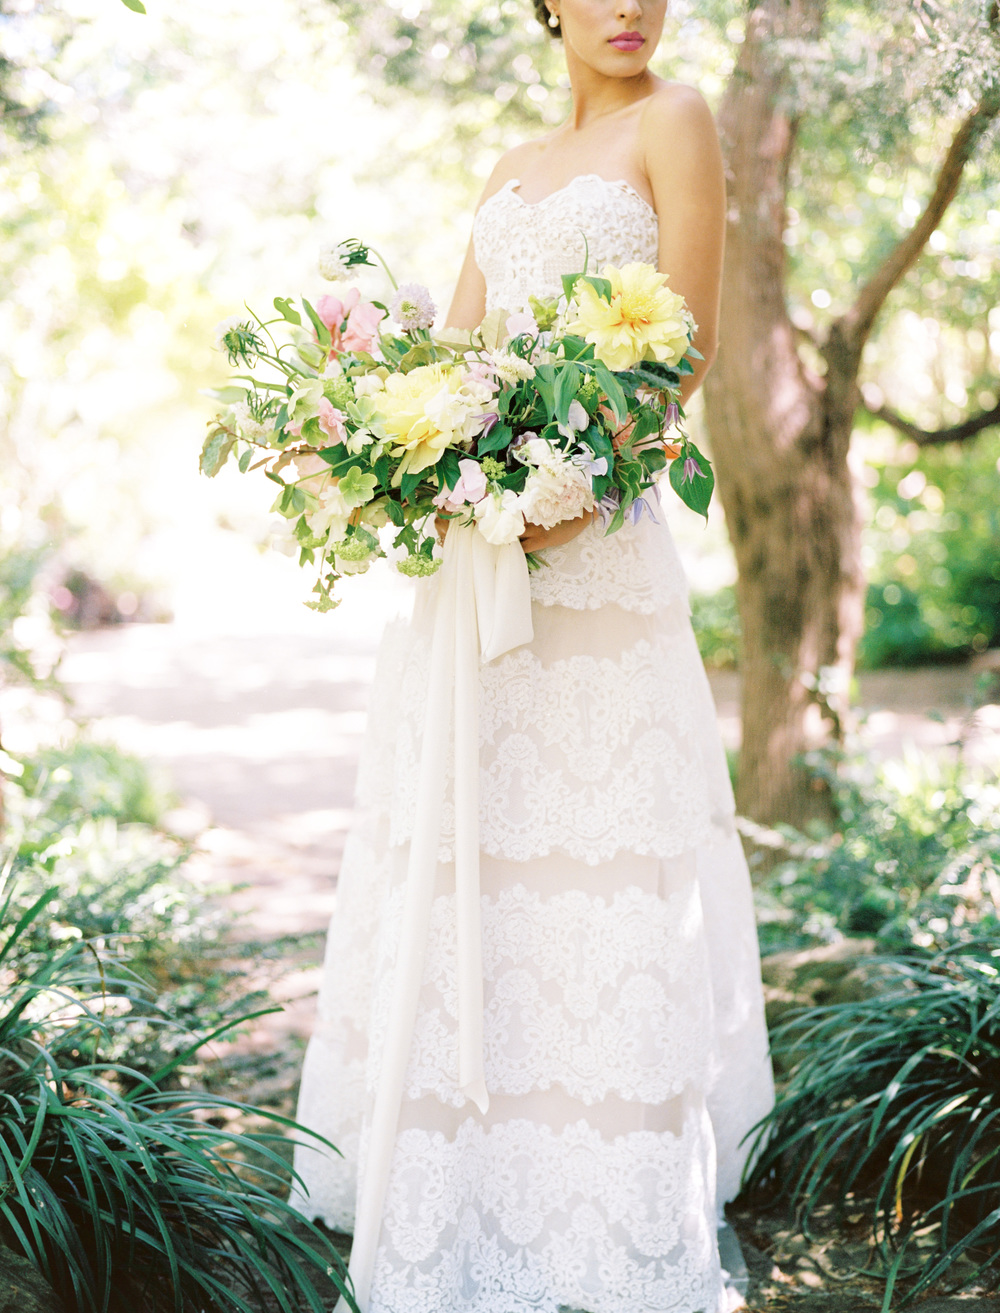 elegant texas garden wedding inspiration from The Wildflowers | follow us on instagram: @ thewildflowers.events